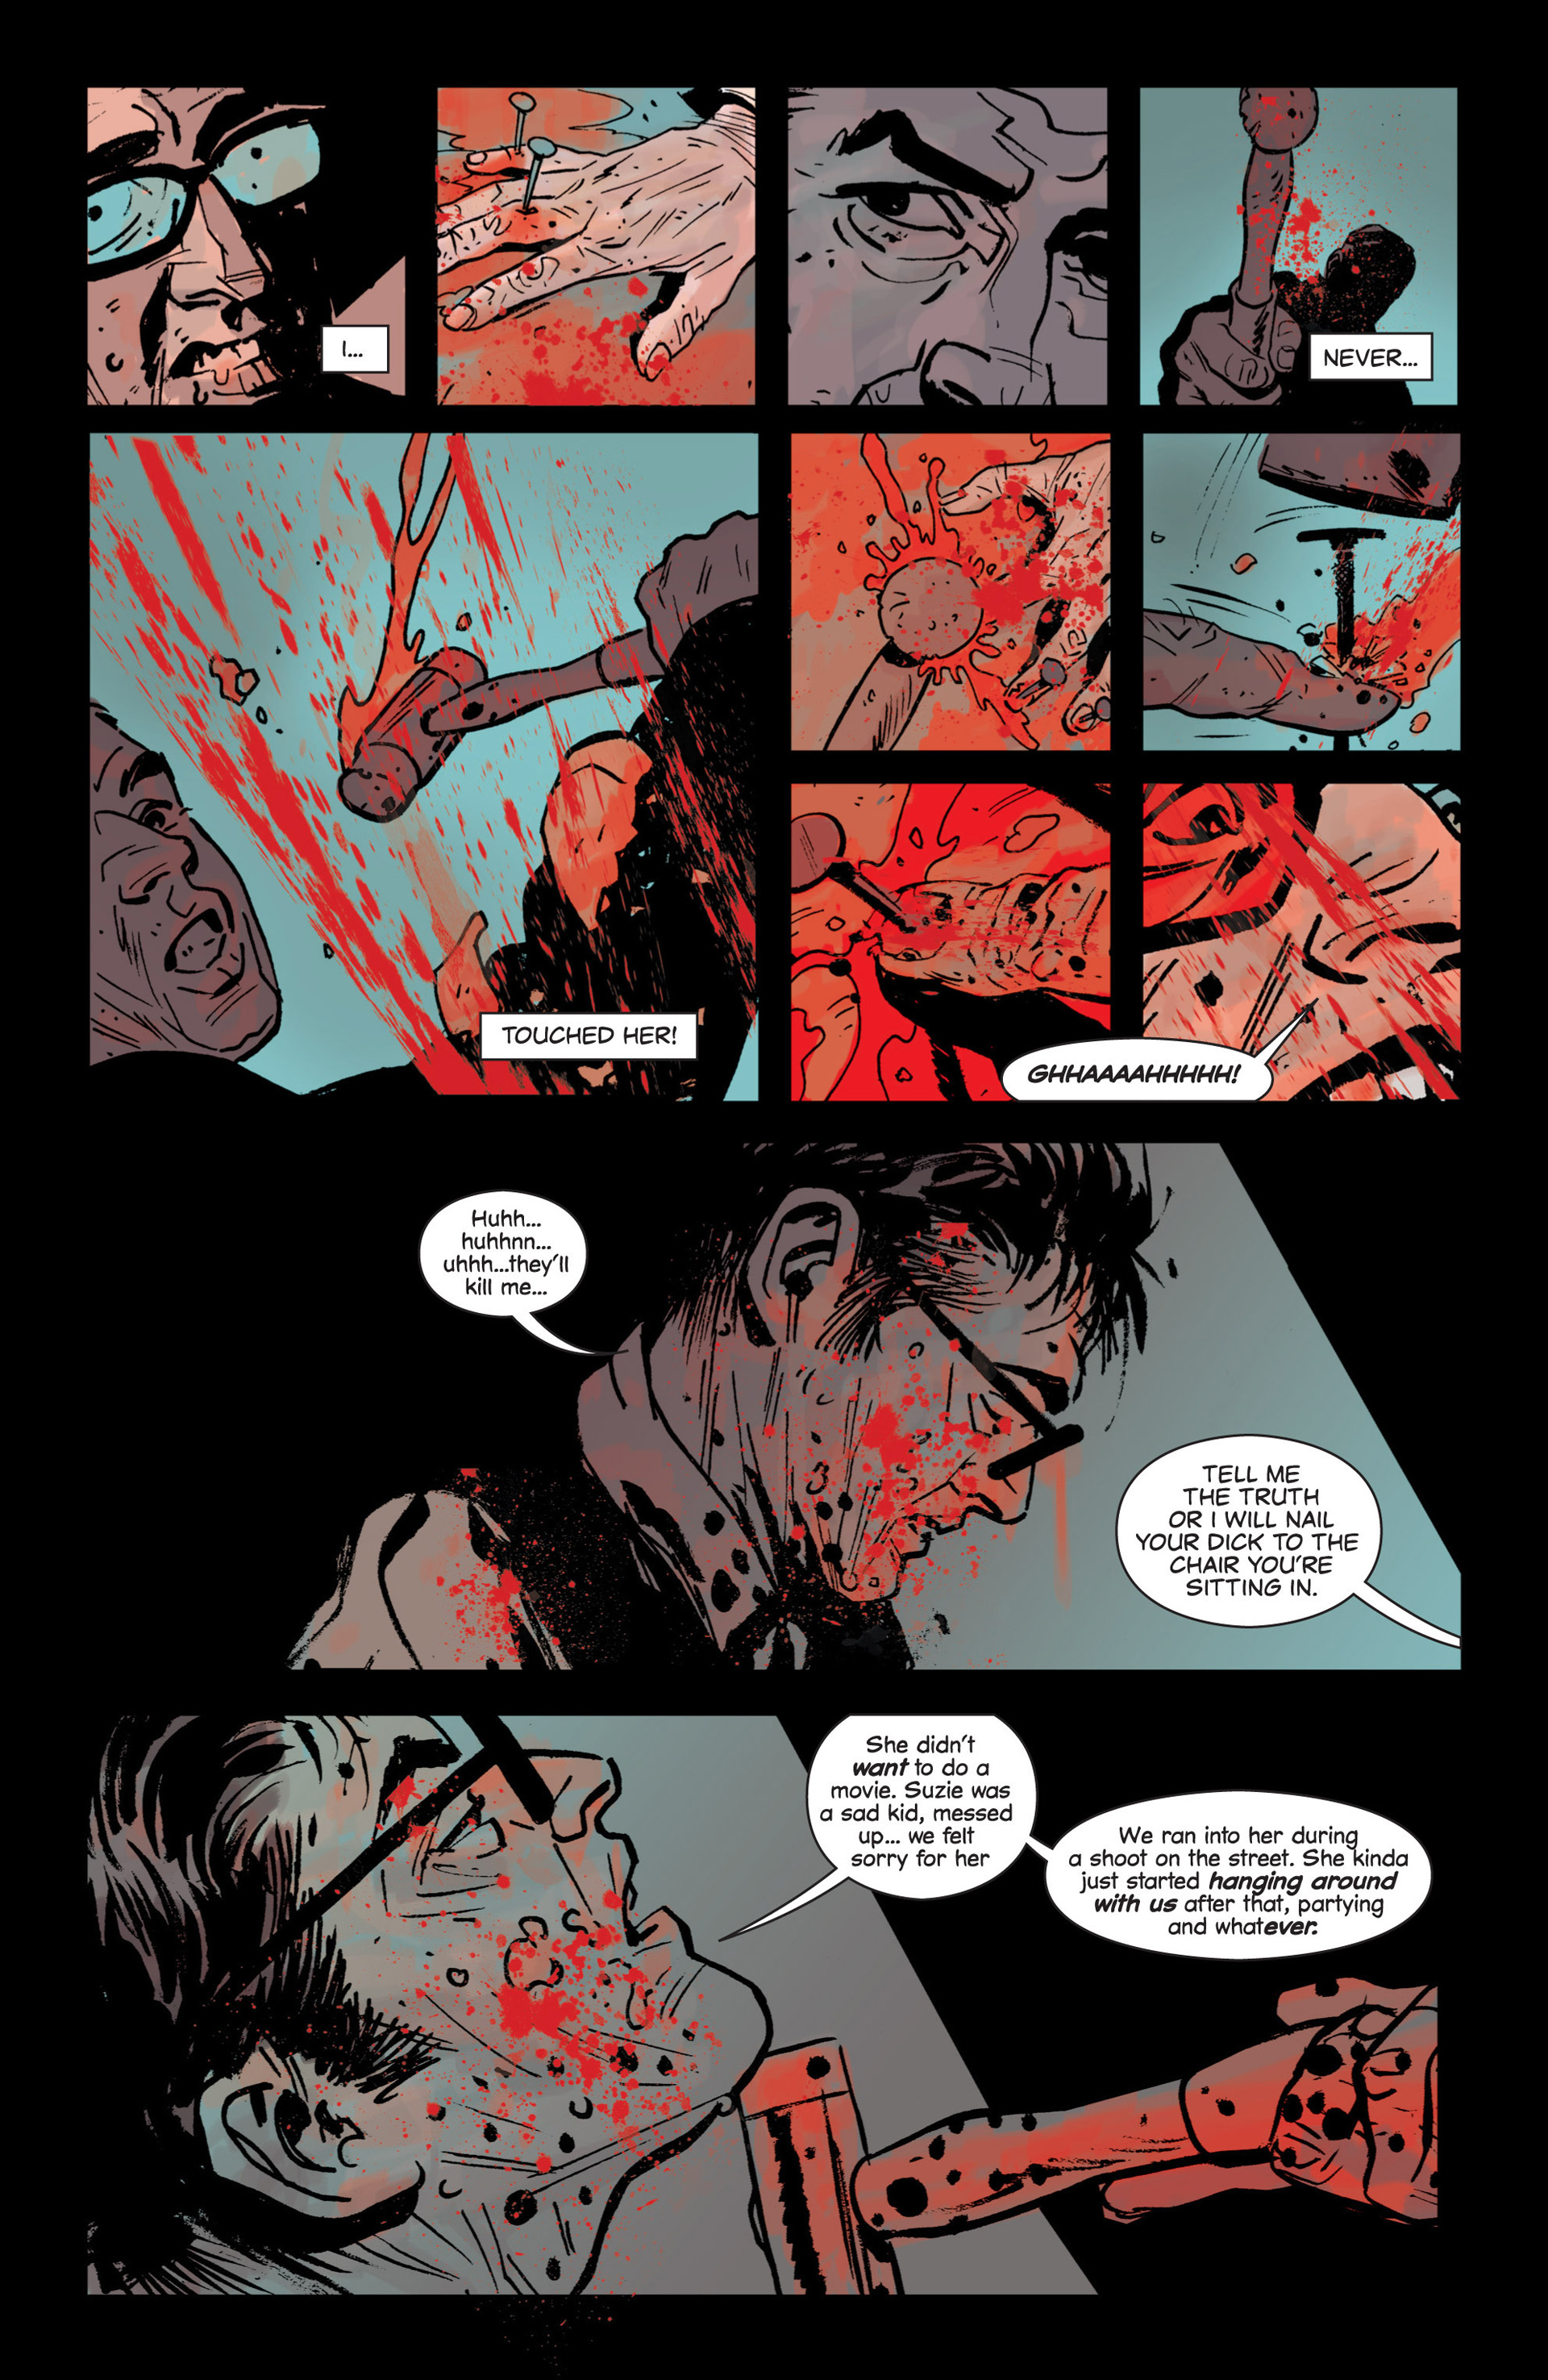 Read online Sex and Violence comic -  Issue # Full - 17